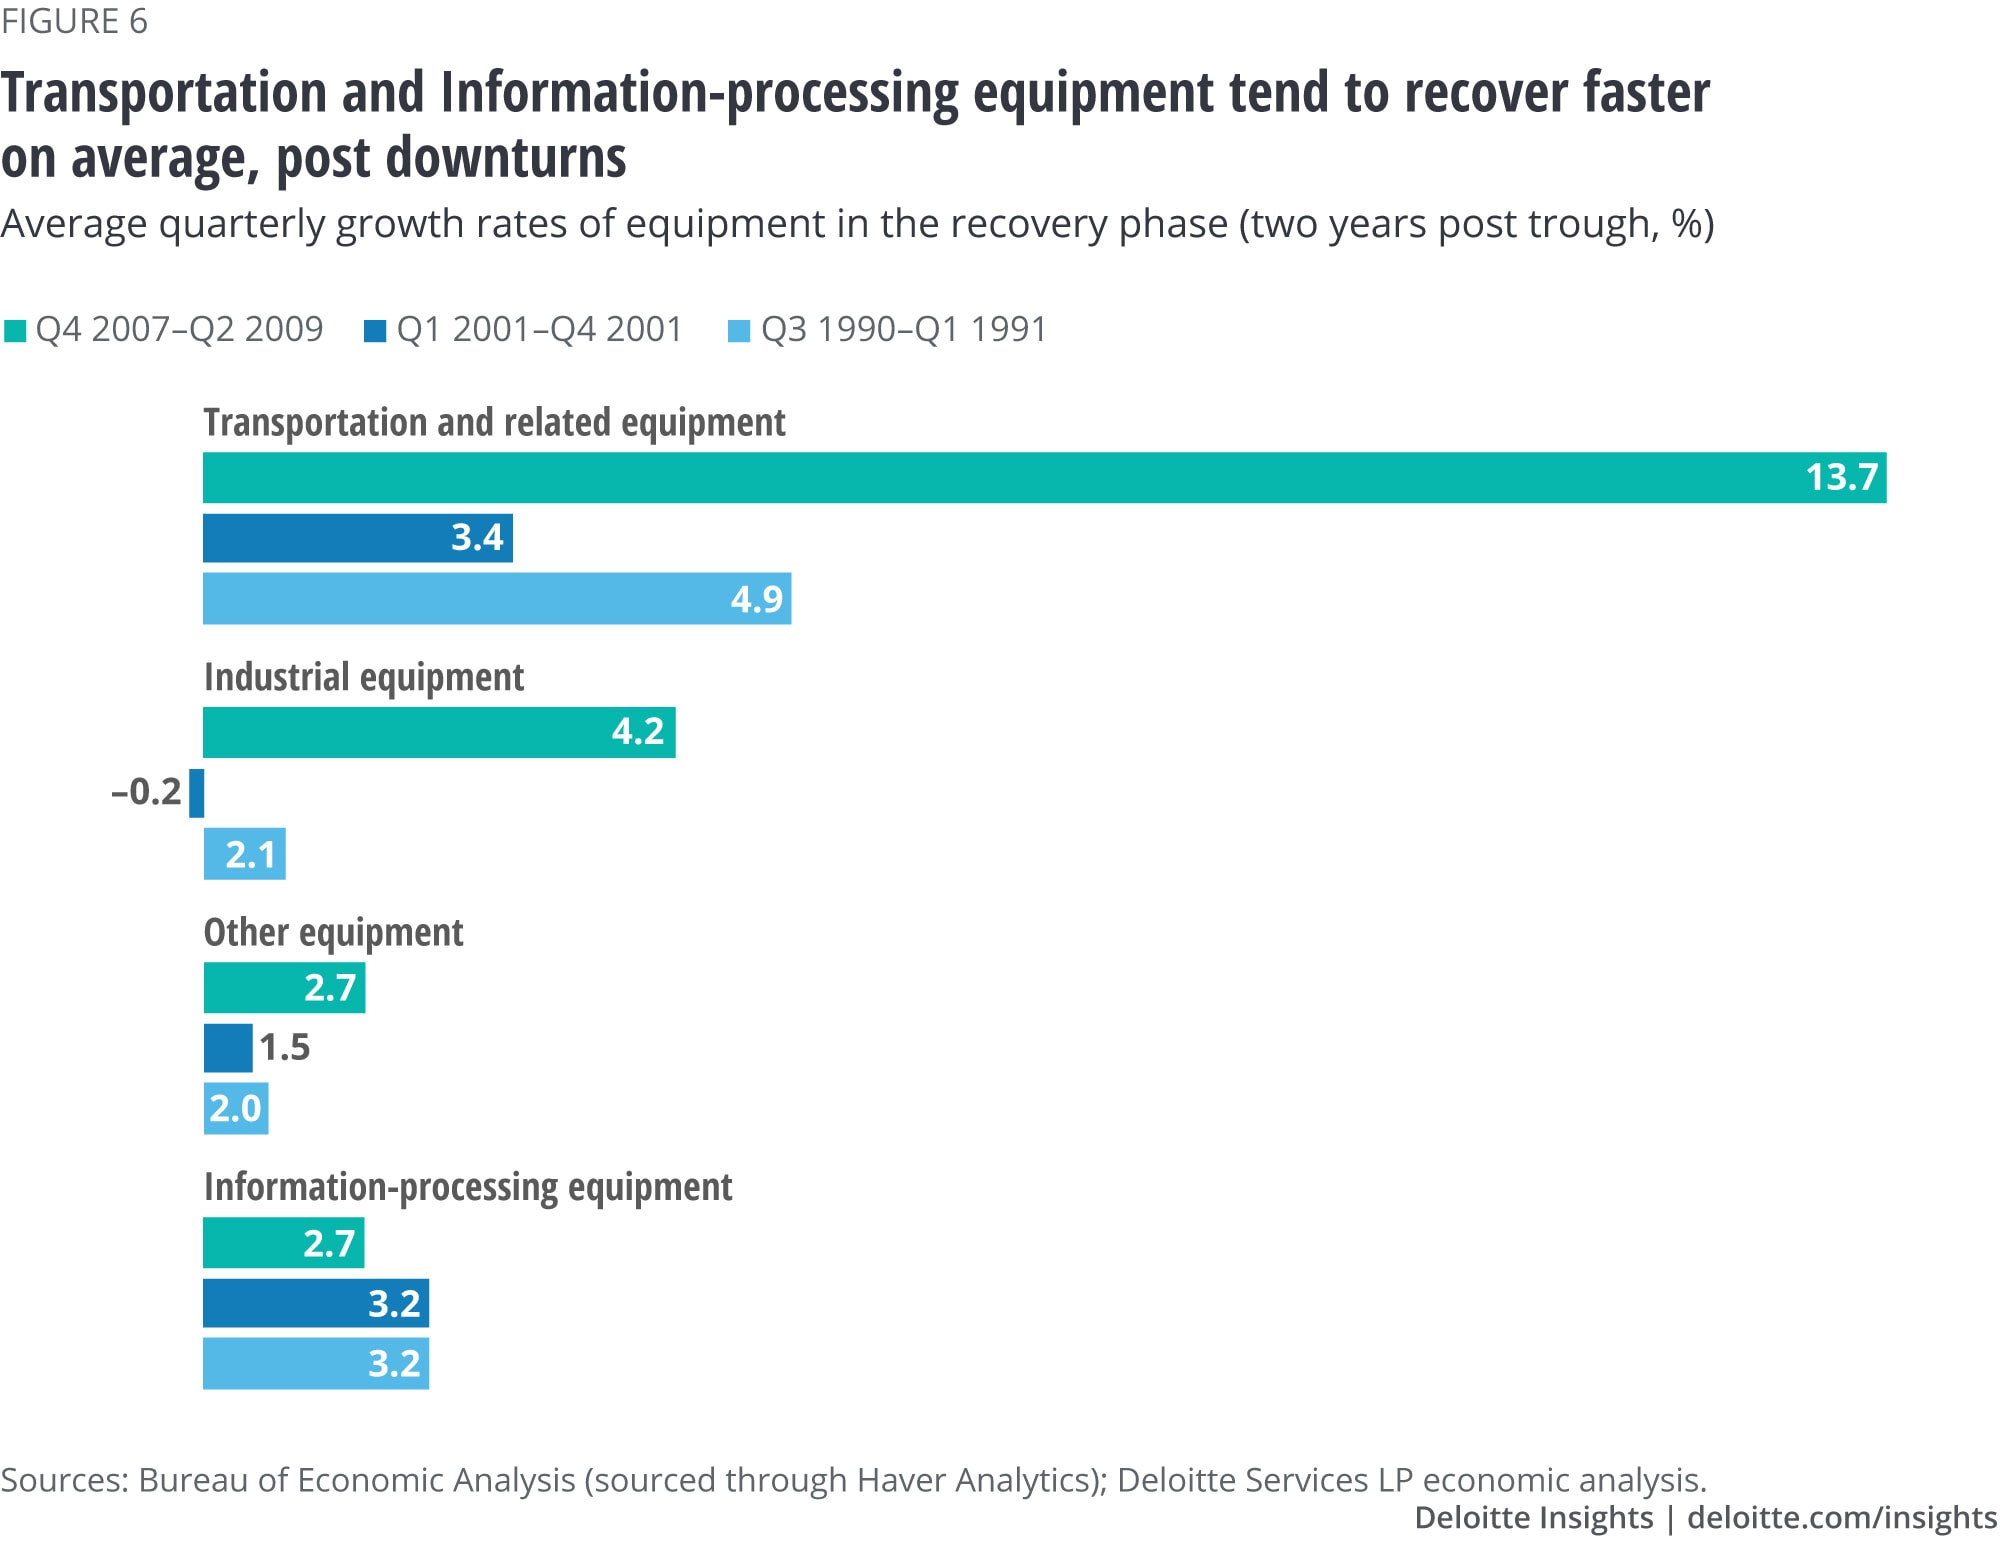 Transportation and information-processing equipment tend to recover faster on an average, post downturns